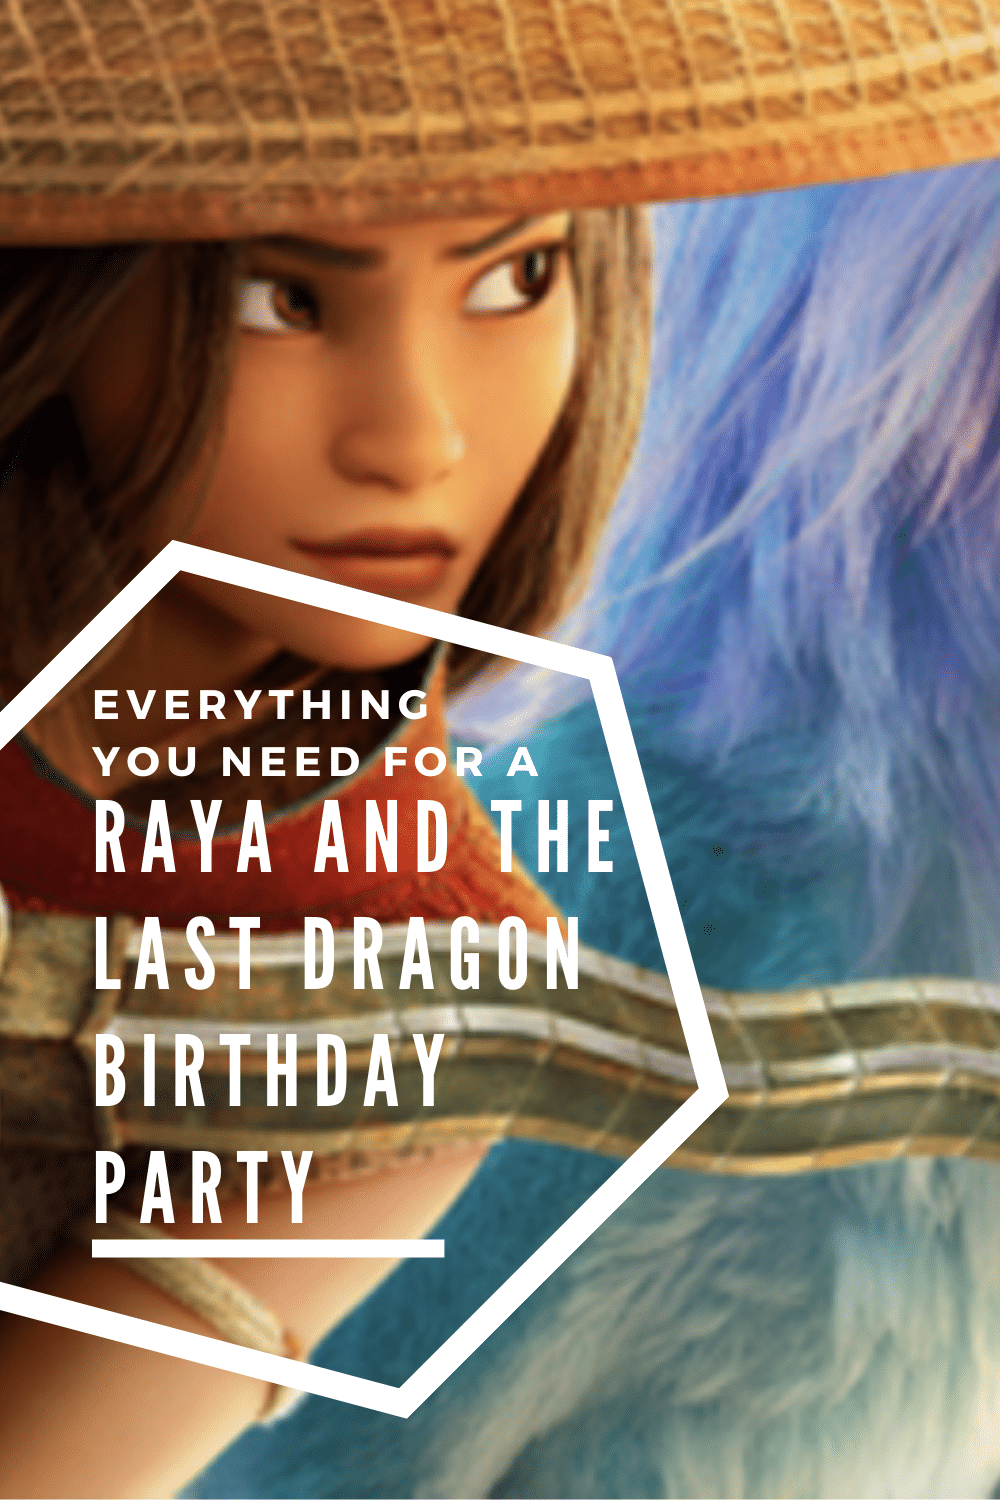 Buy Everything You Need For A Raya And The Last Dragon Birthday Party with Amazon Prime